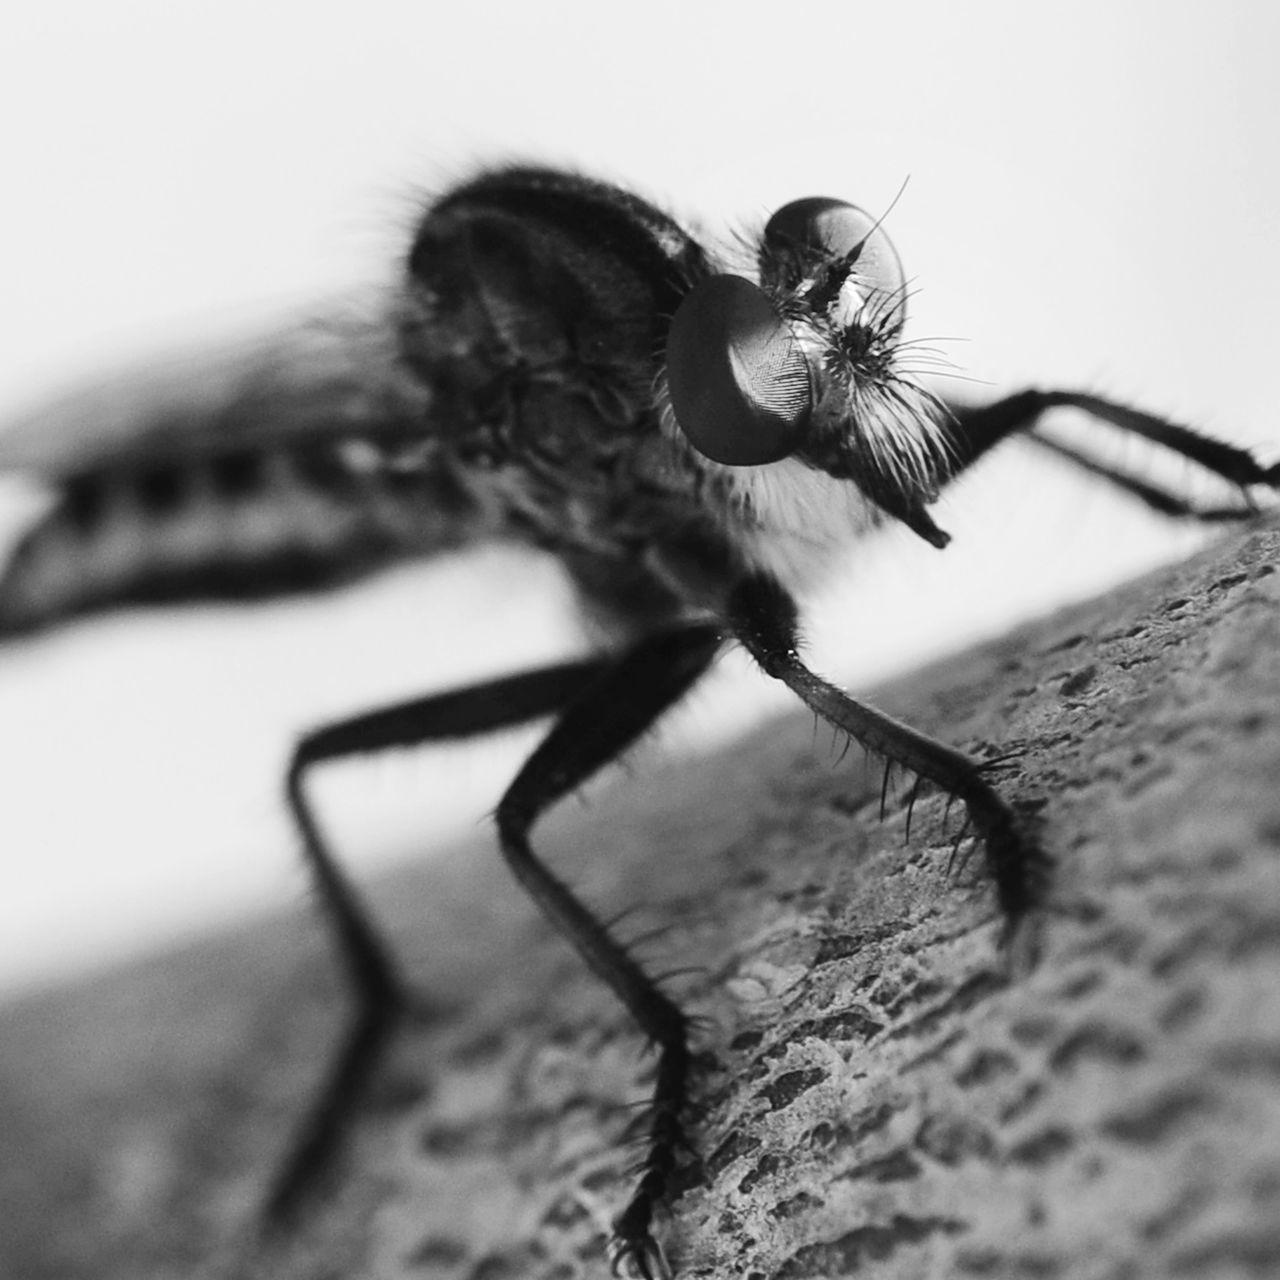 One Animal Insect Animal Themes Animals In The Wild Close-up Animal Wildlife Day No People Outdoors Perching Nature Eyeemphotography Black And White Collection! Black & White Photography EyeEm Gallery Black&white Texas Photographer Blackandwhite Photography Macro Insects Macrophotography Black And White Collection